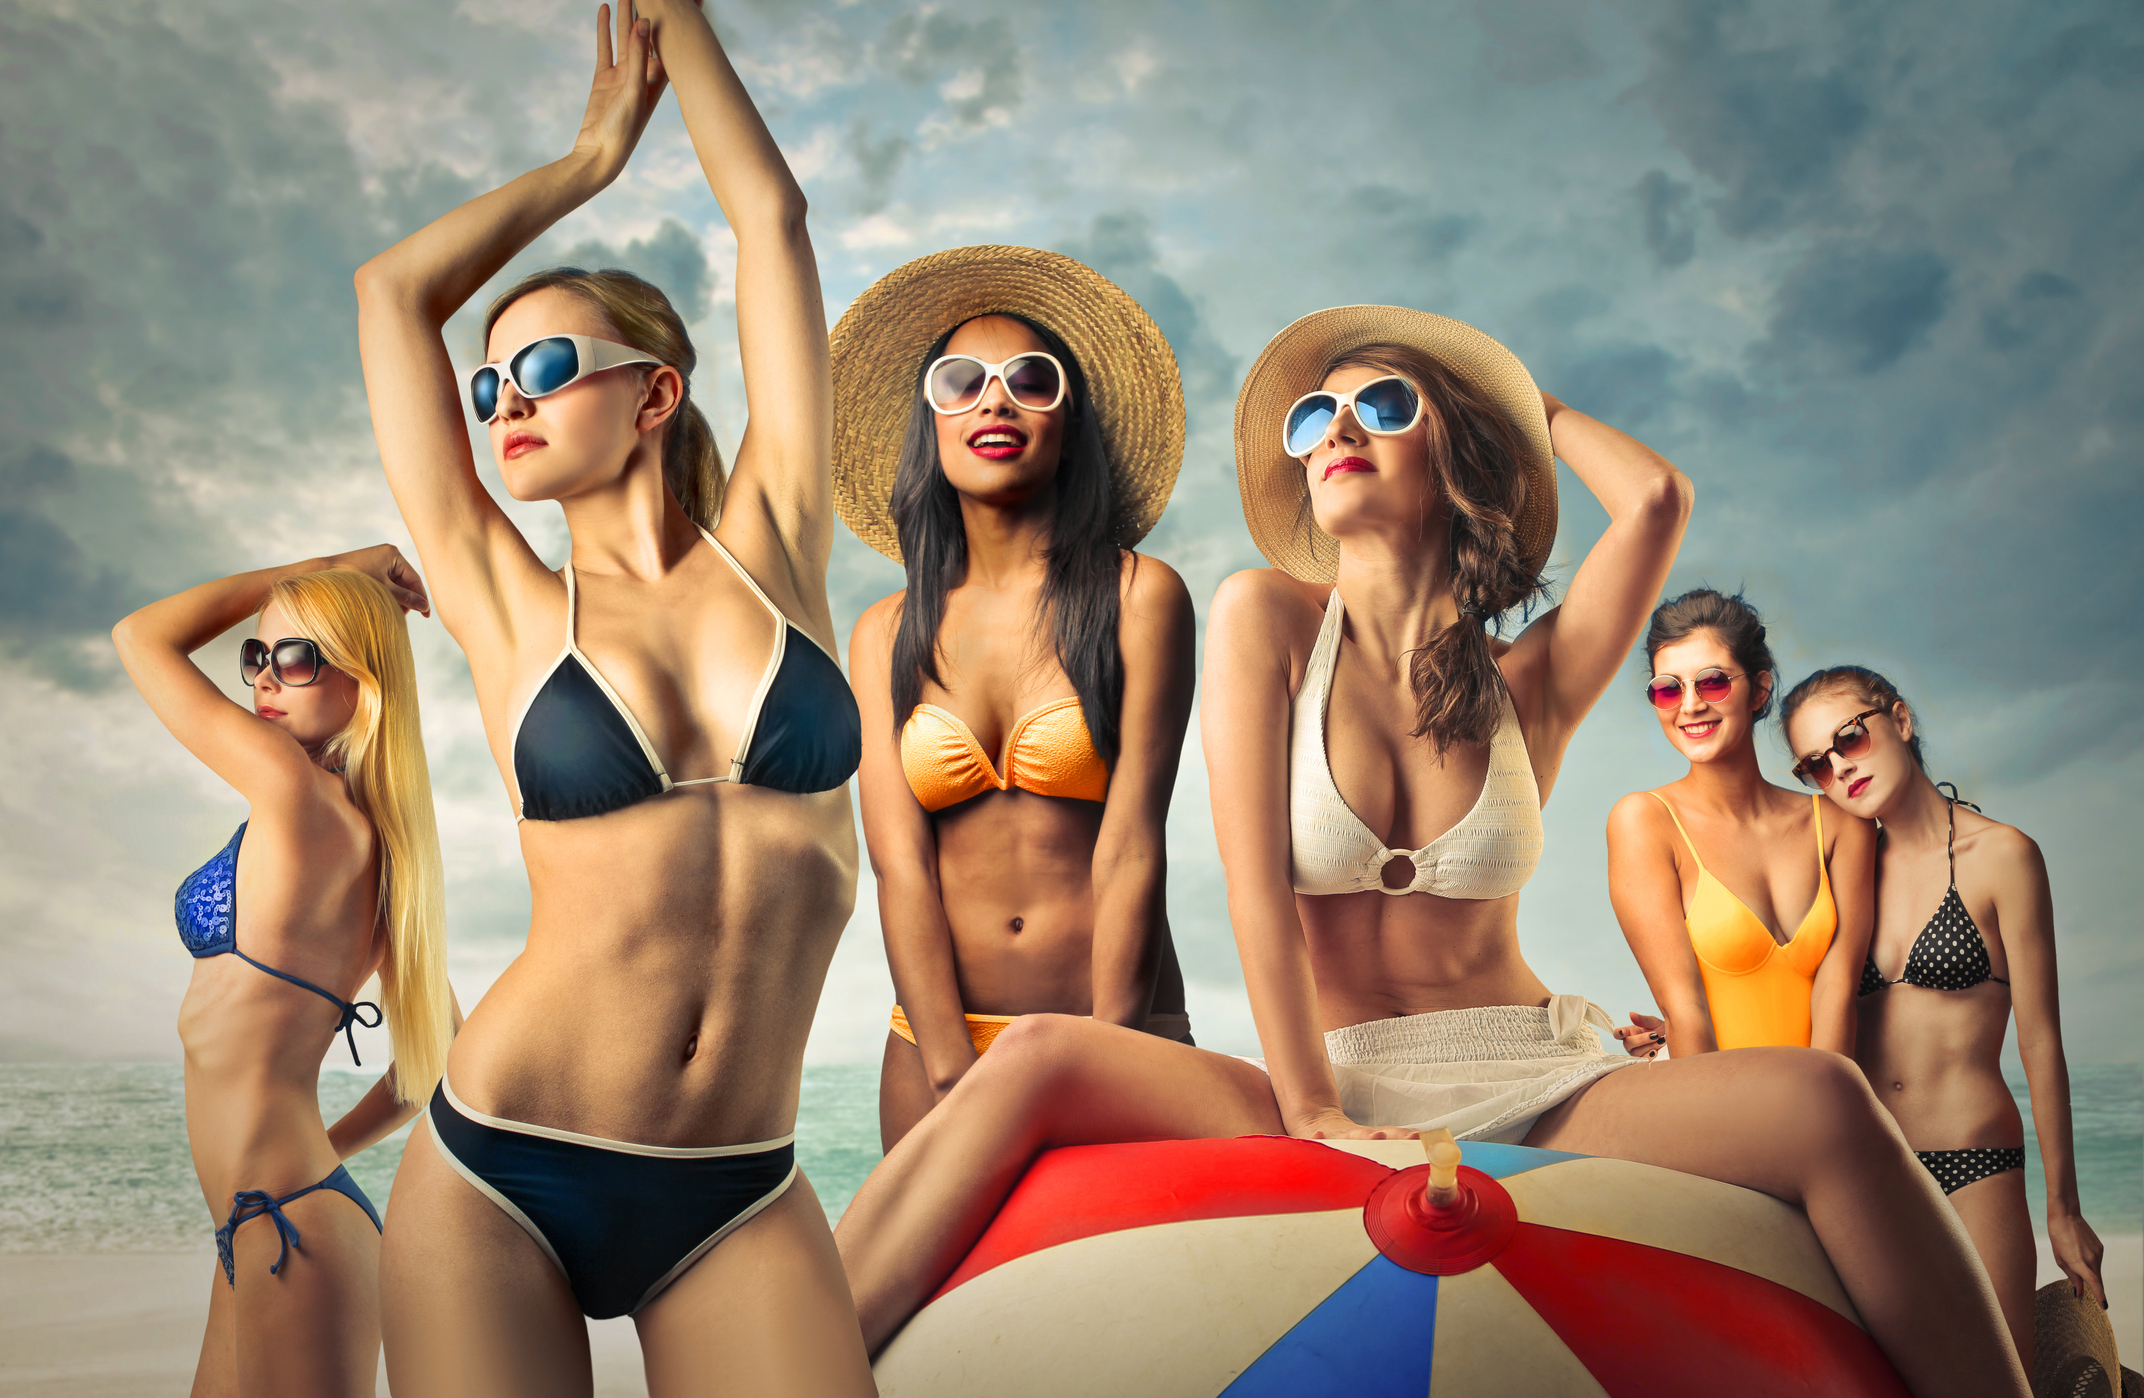 6a819e31e4462 The Underboob Bikini Is This Summer's Hottest Trend [PHOTOS] | 97.1 The  Ticket